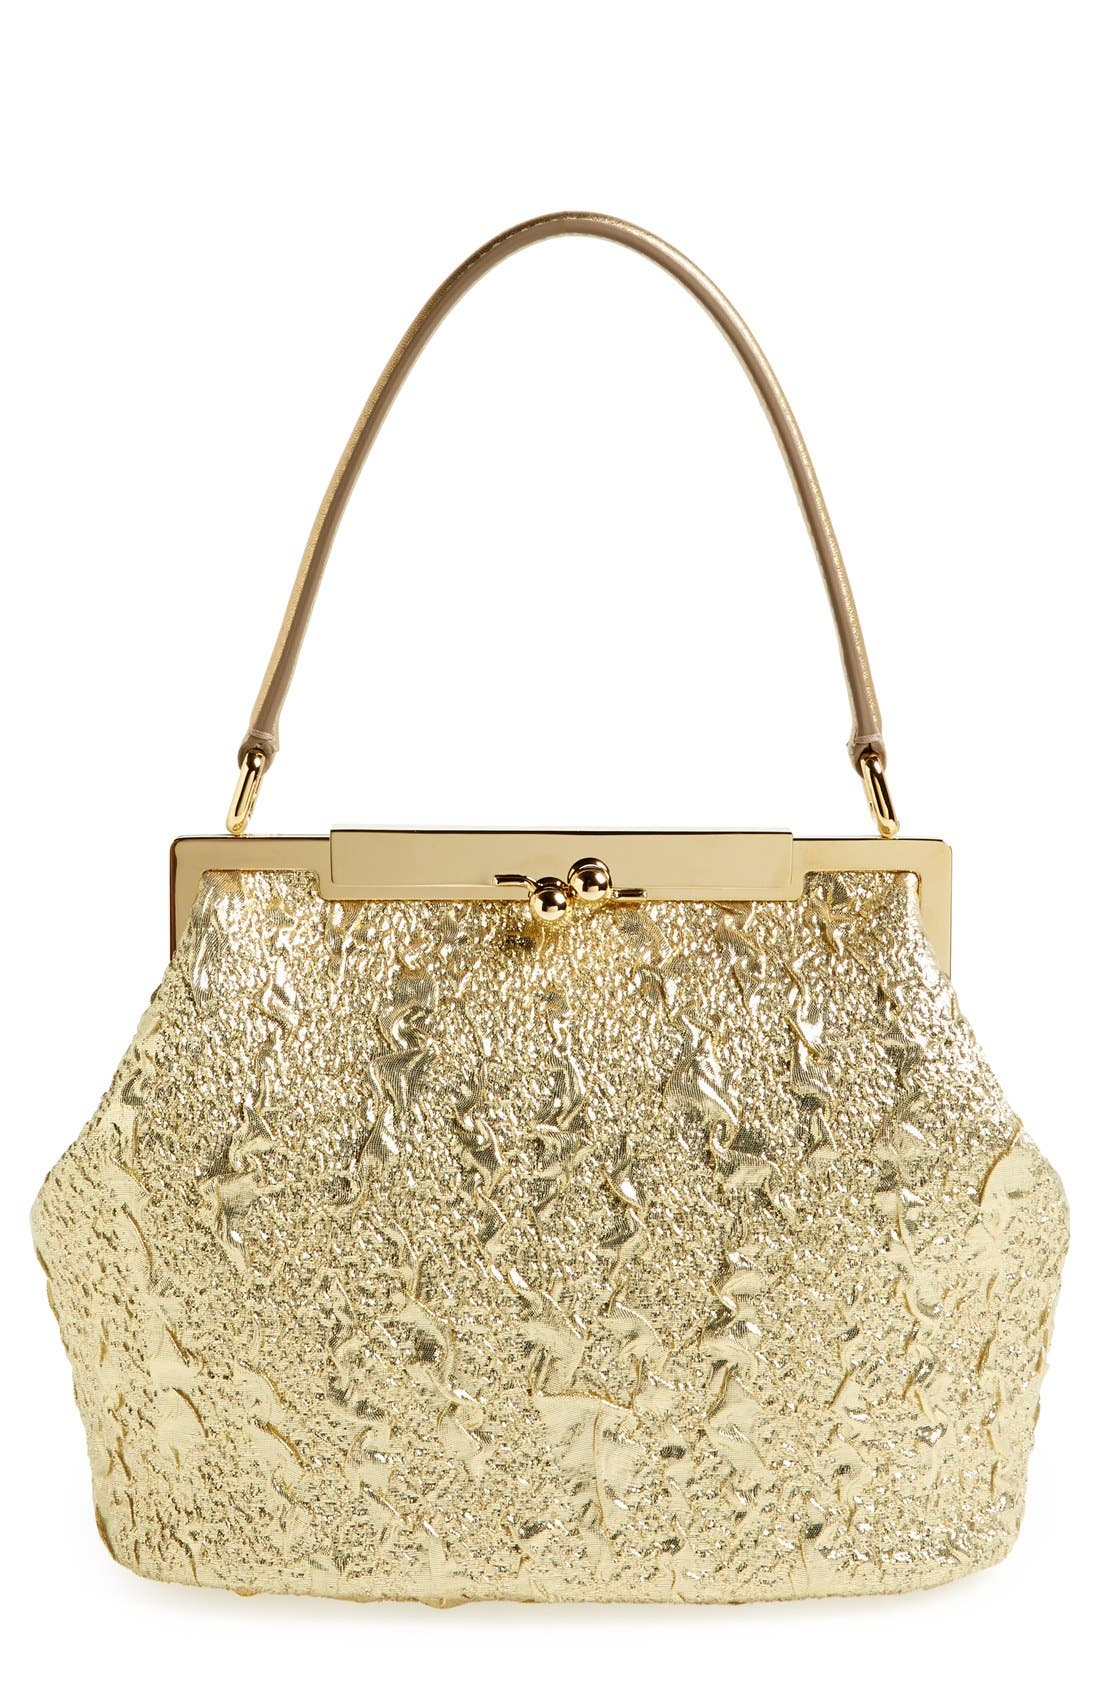 Alternate Image 1 Selected - Dolce&Gabbana Brocade Handbag